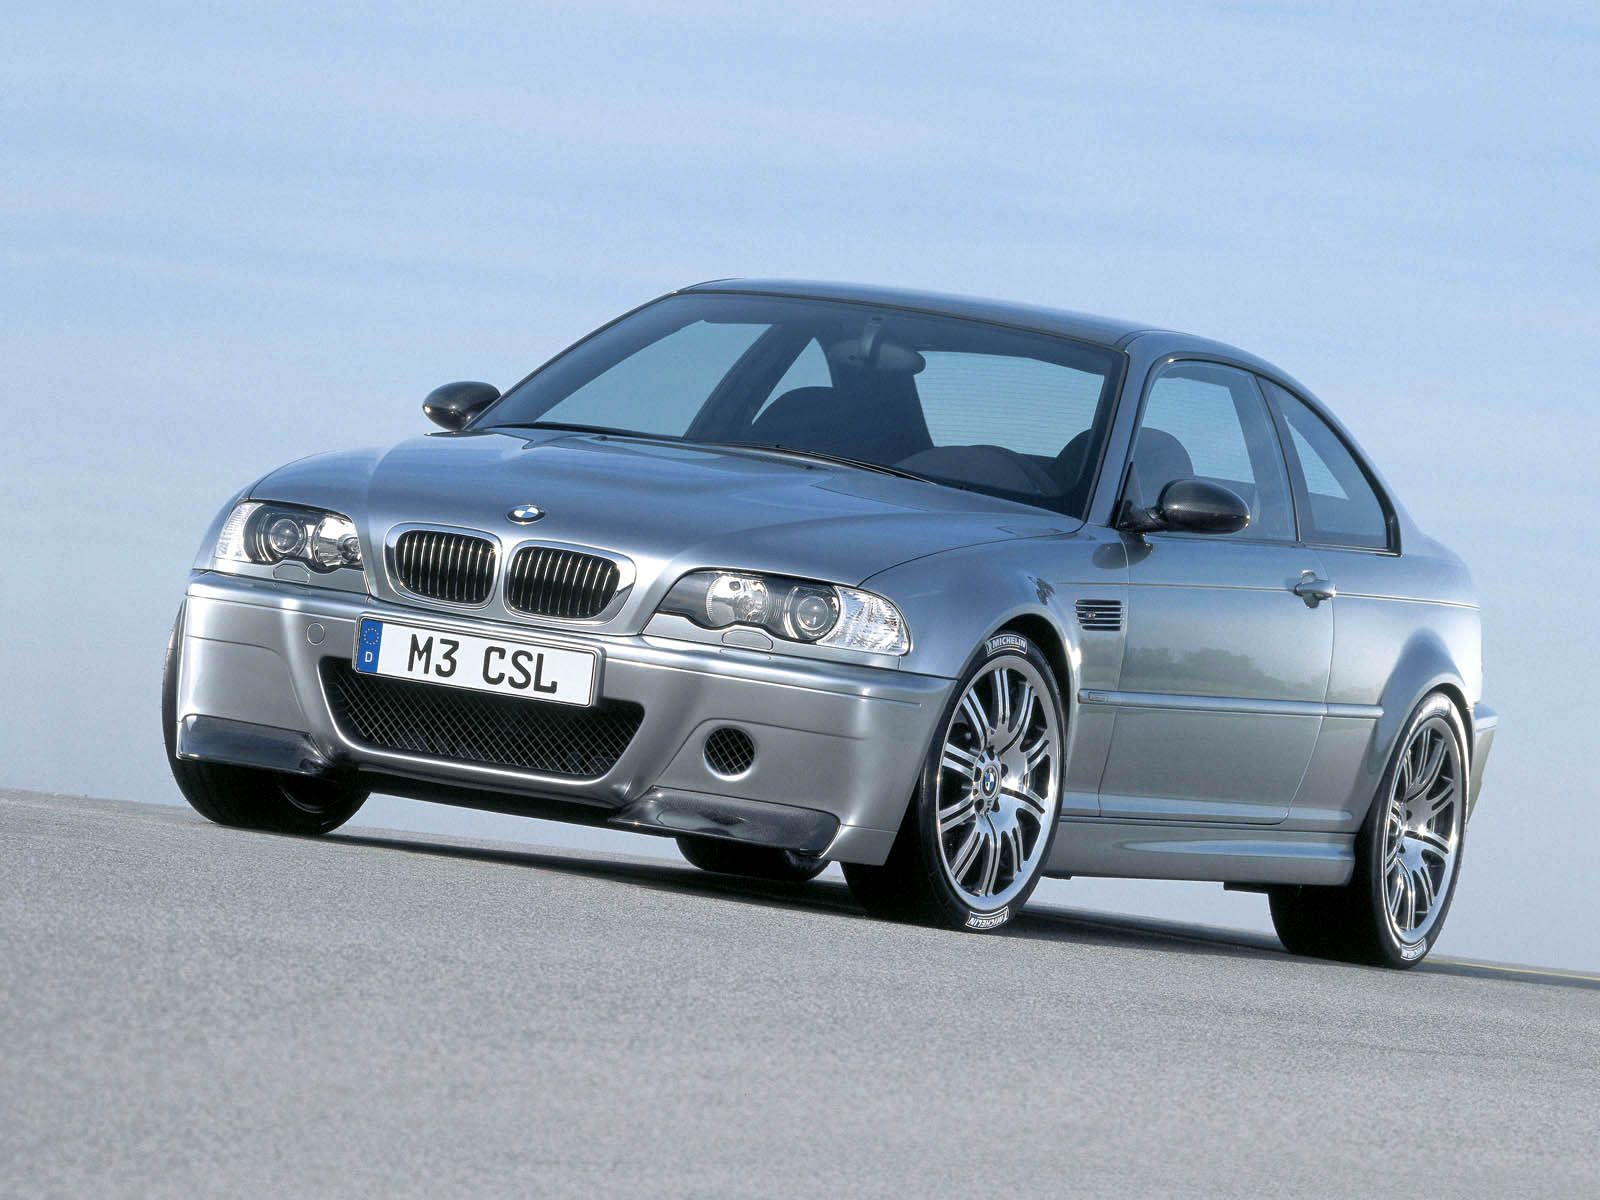 bmw m3 csl photos photogallery with 30 pics. Black Bedroom Furniture Sets. Home Design Ideas